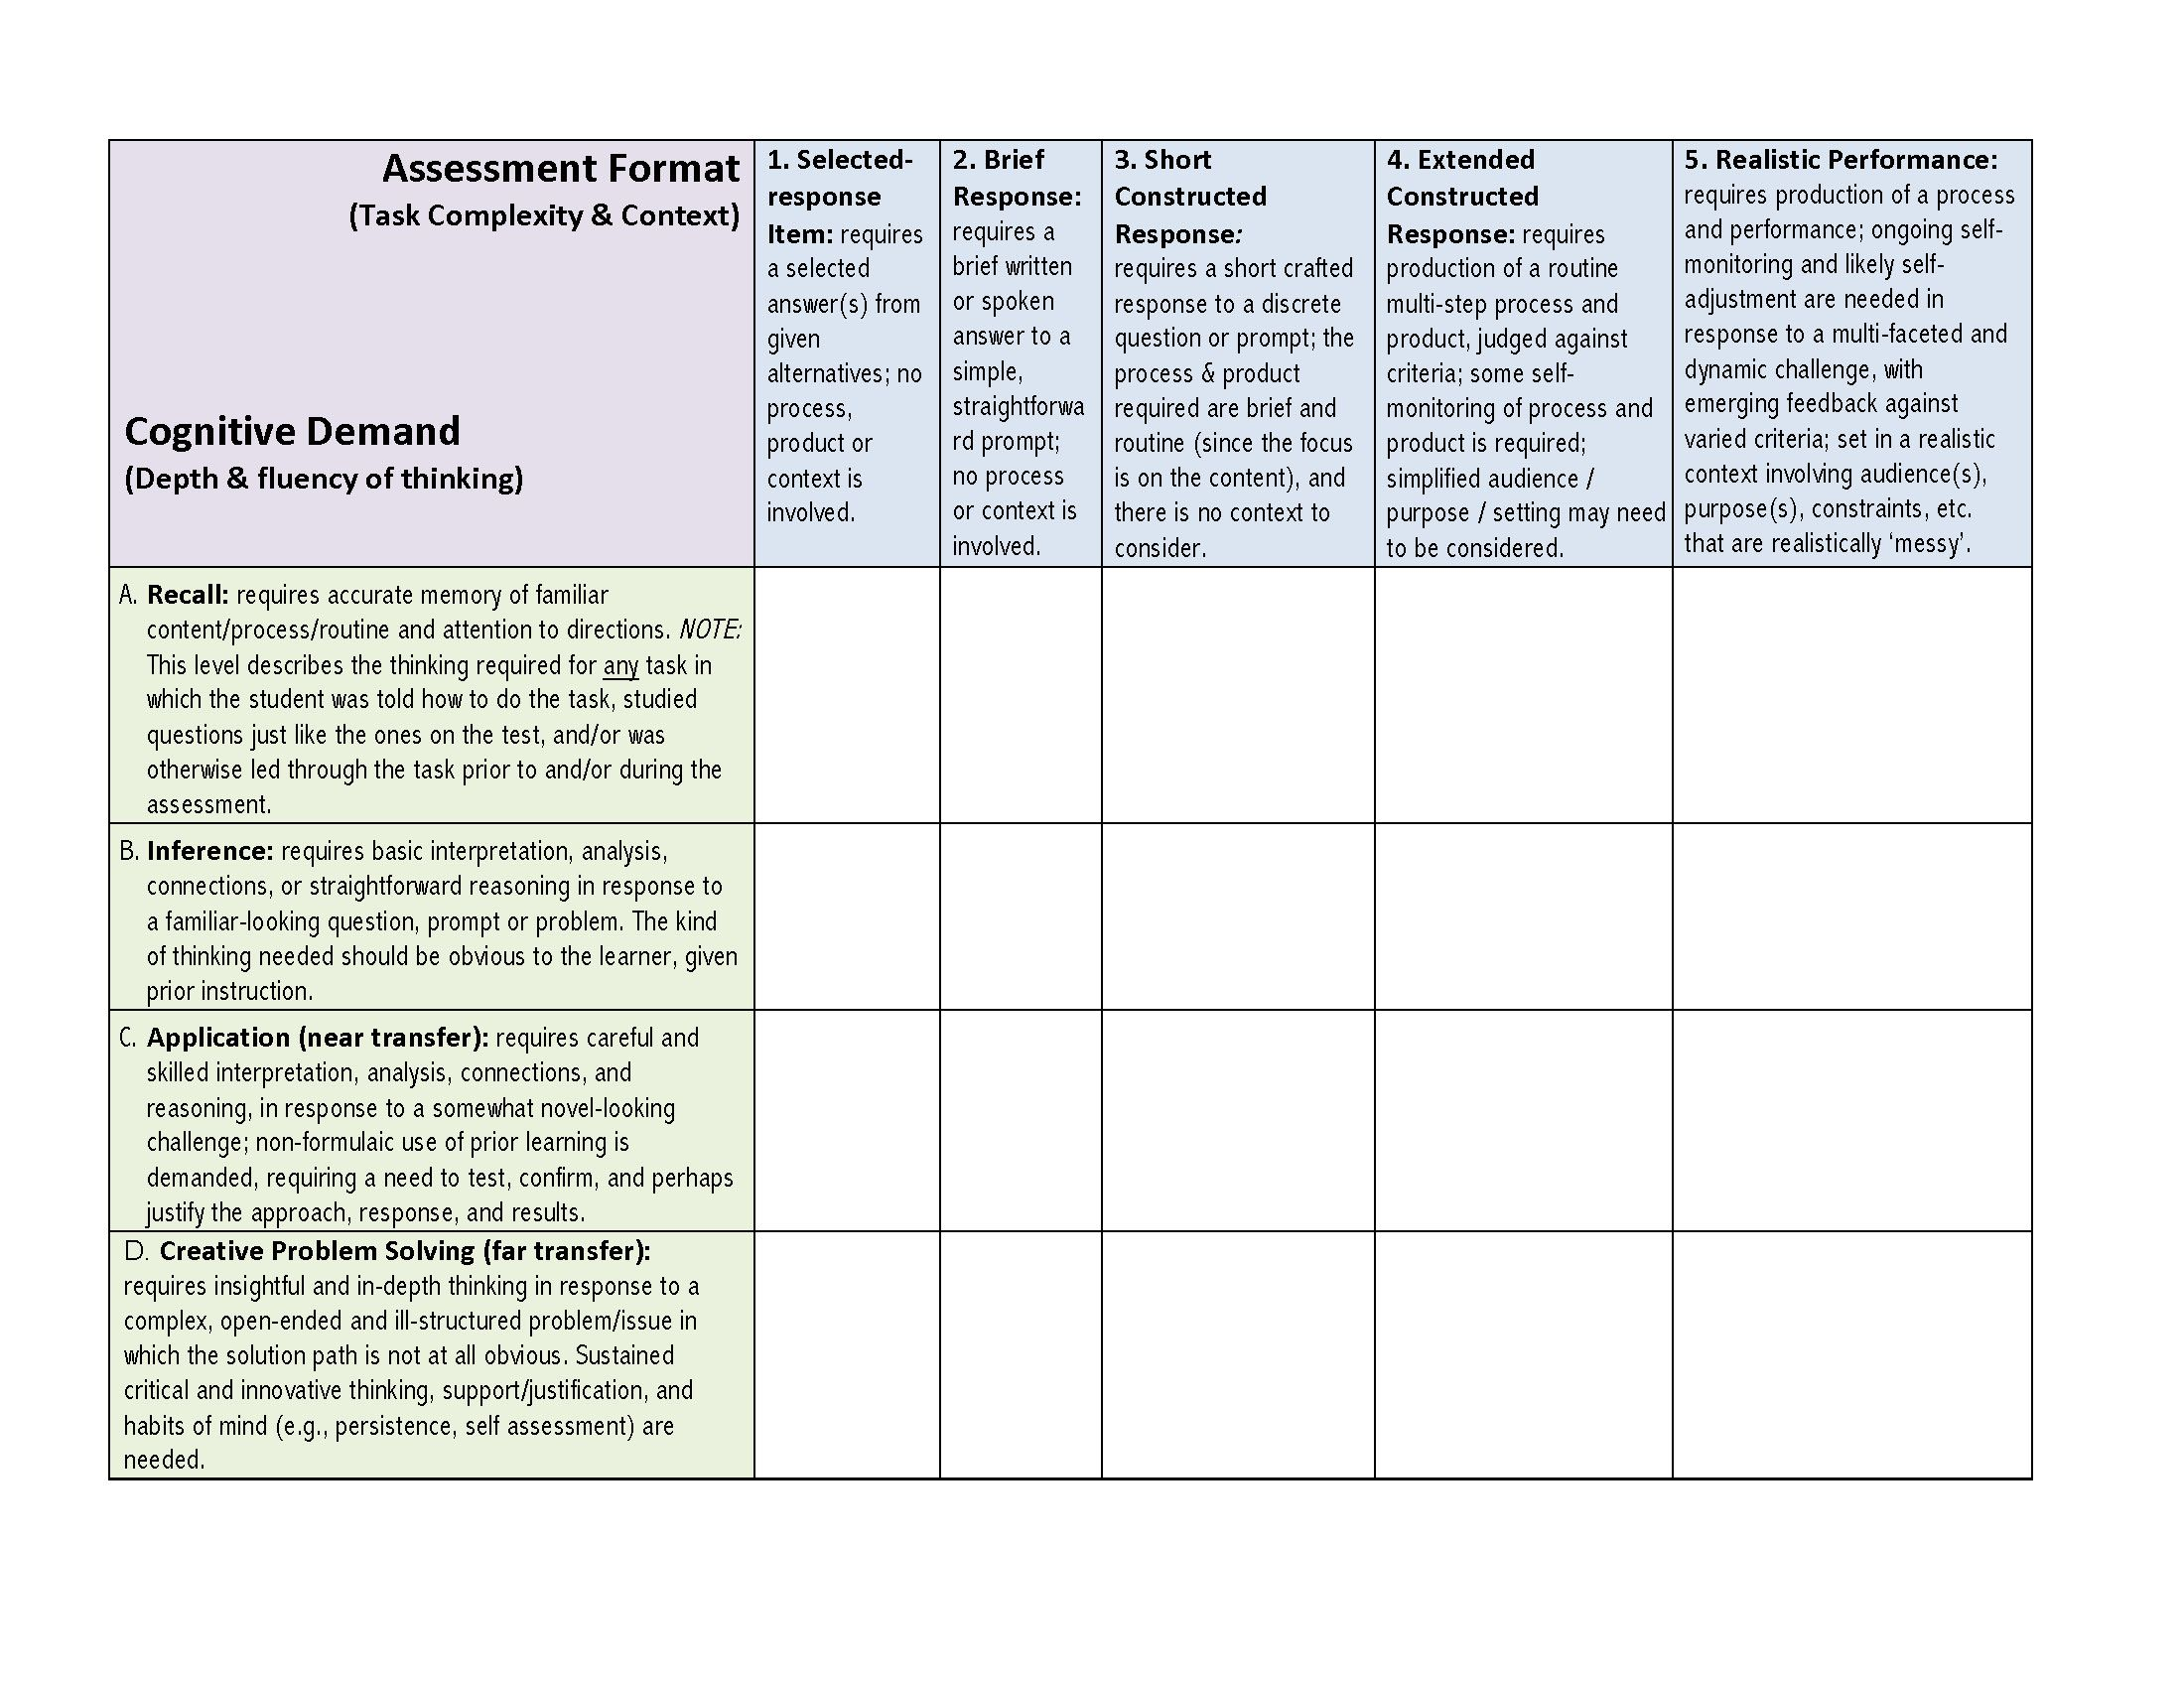 1 Audit Matrix For Assessments G Wiggins